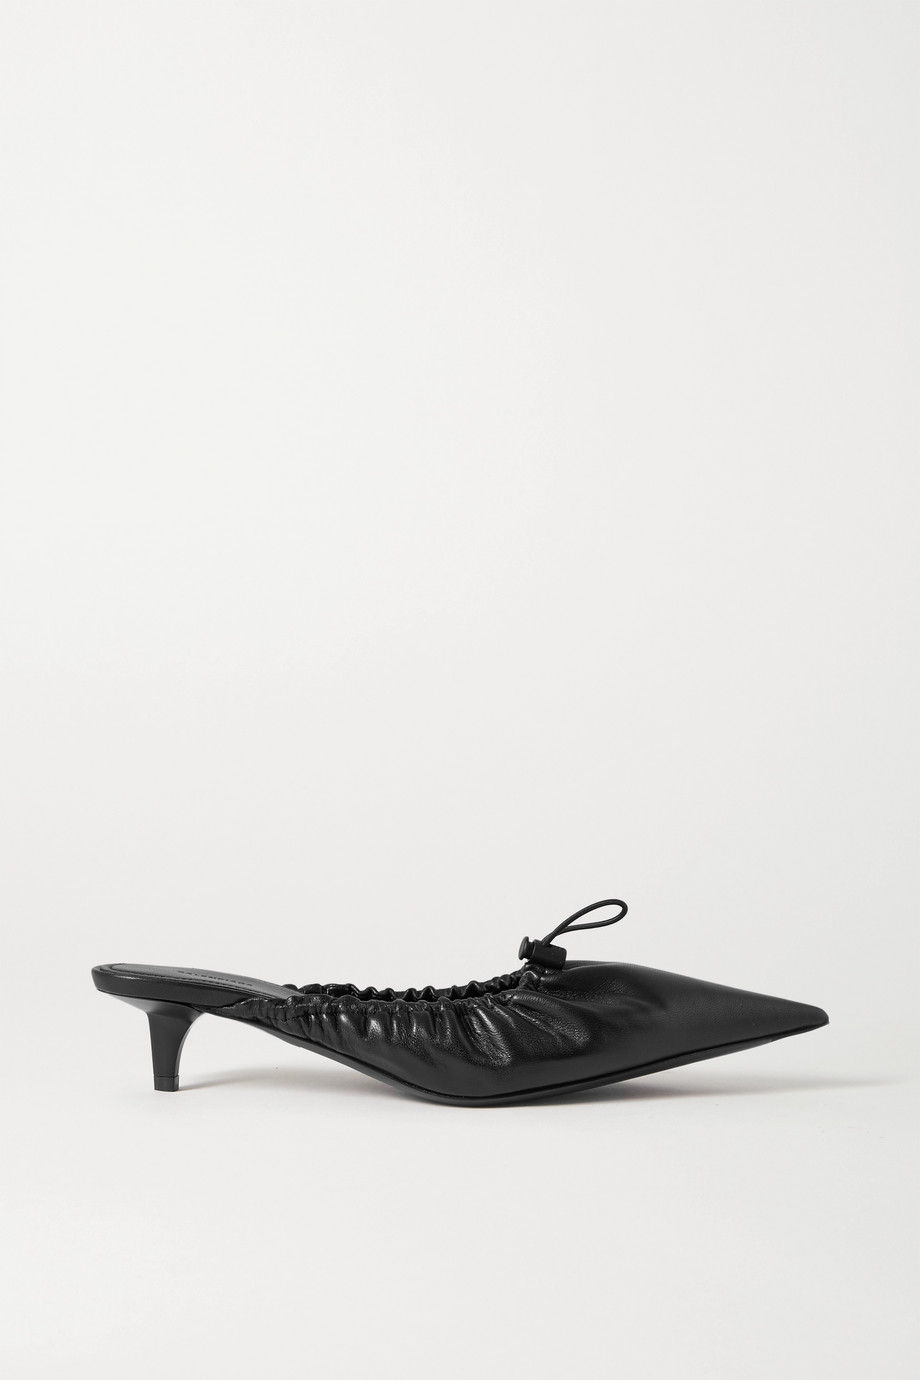 BALENCIAGA Scrunch Knife ruched leather mules